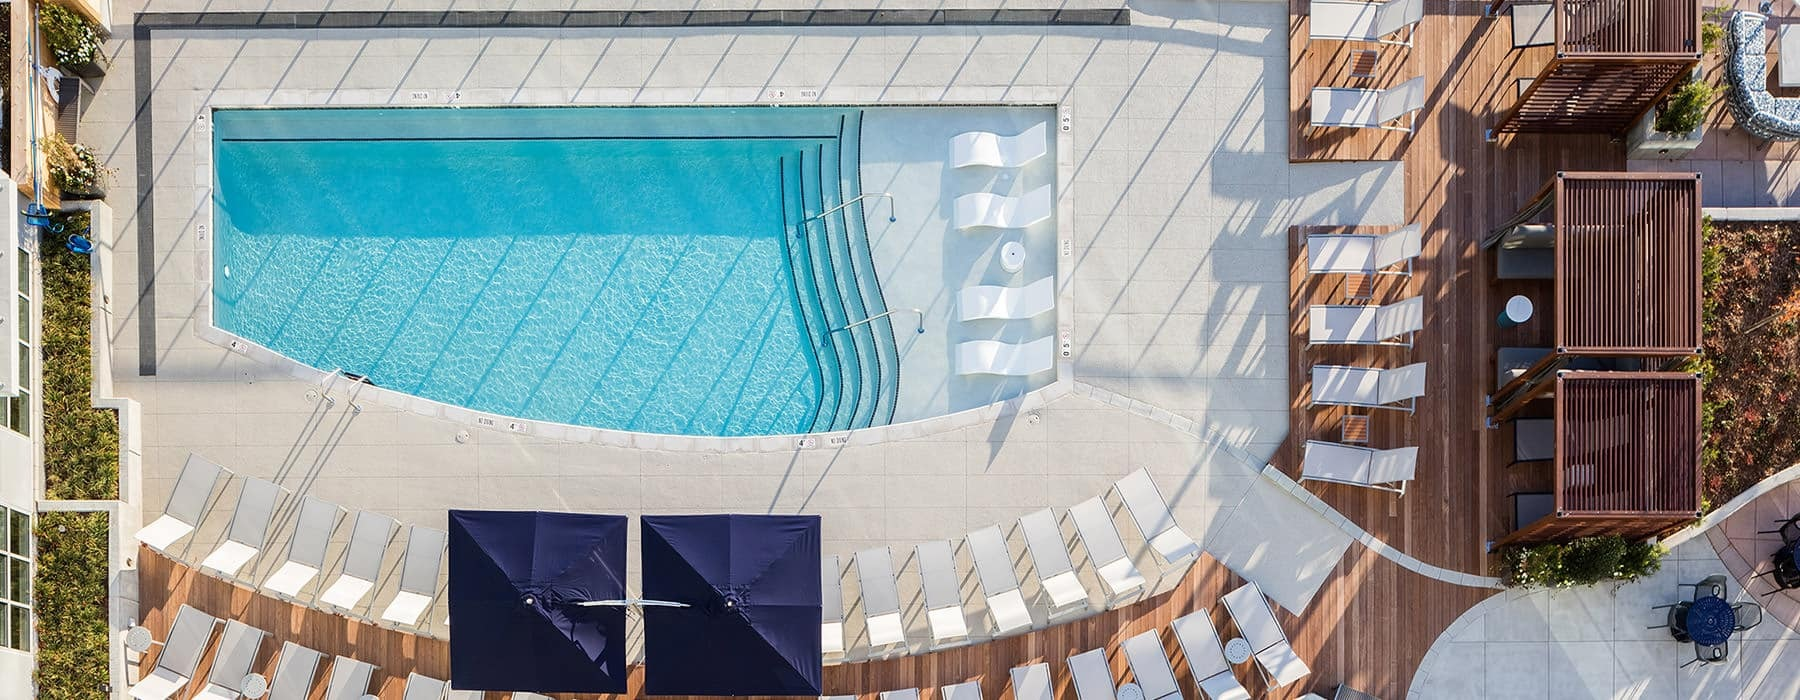 aerial view of property showing swimming pool and ample space for relaxing around the pool